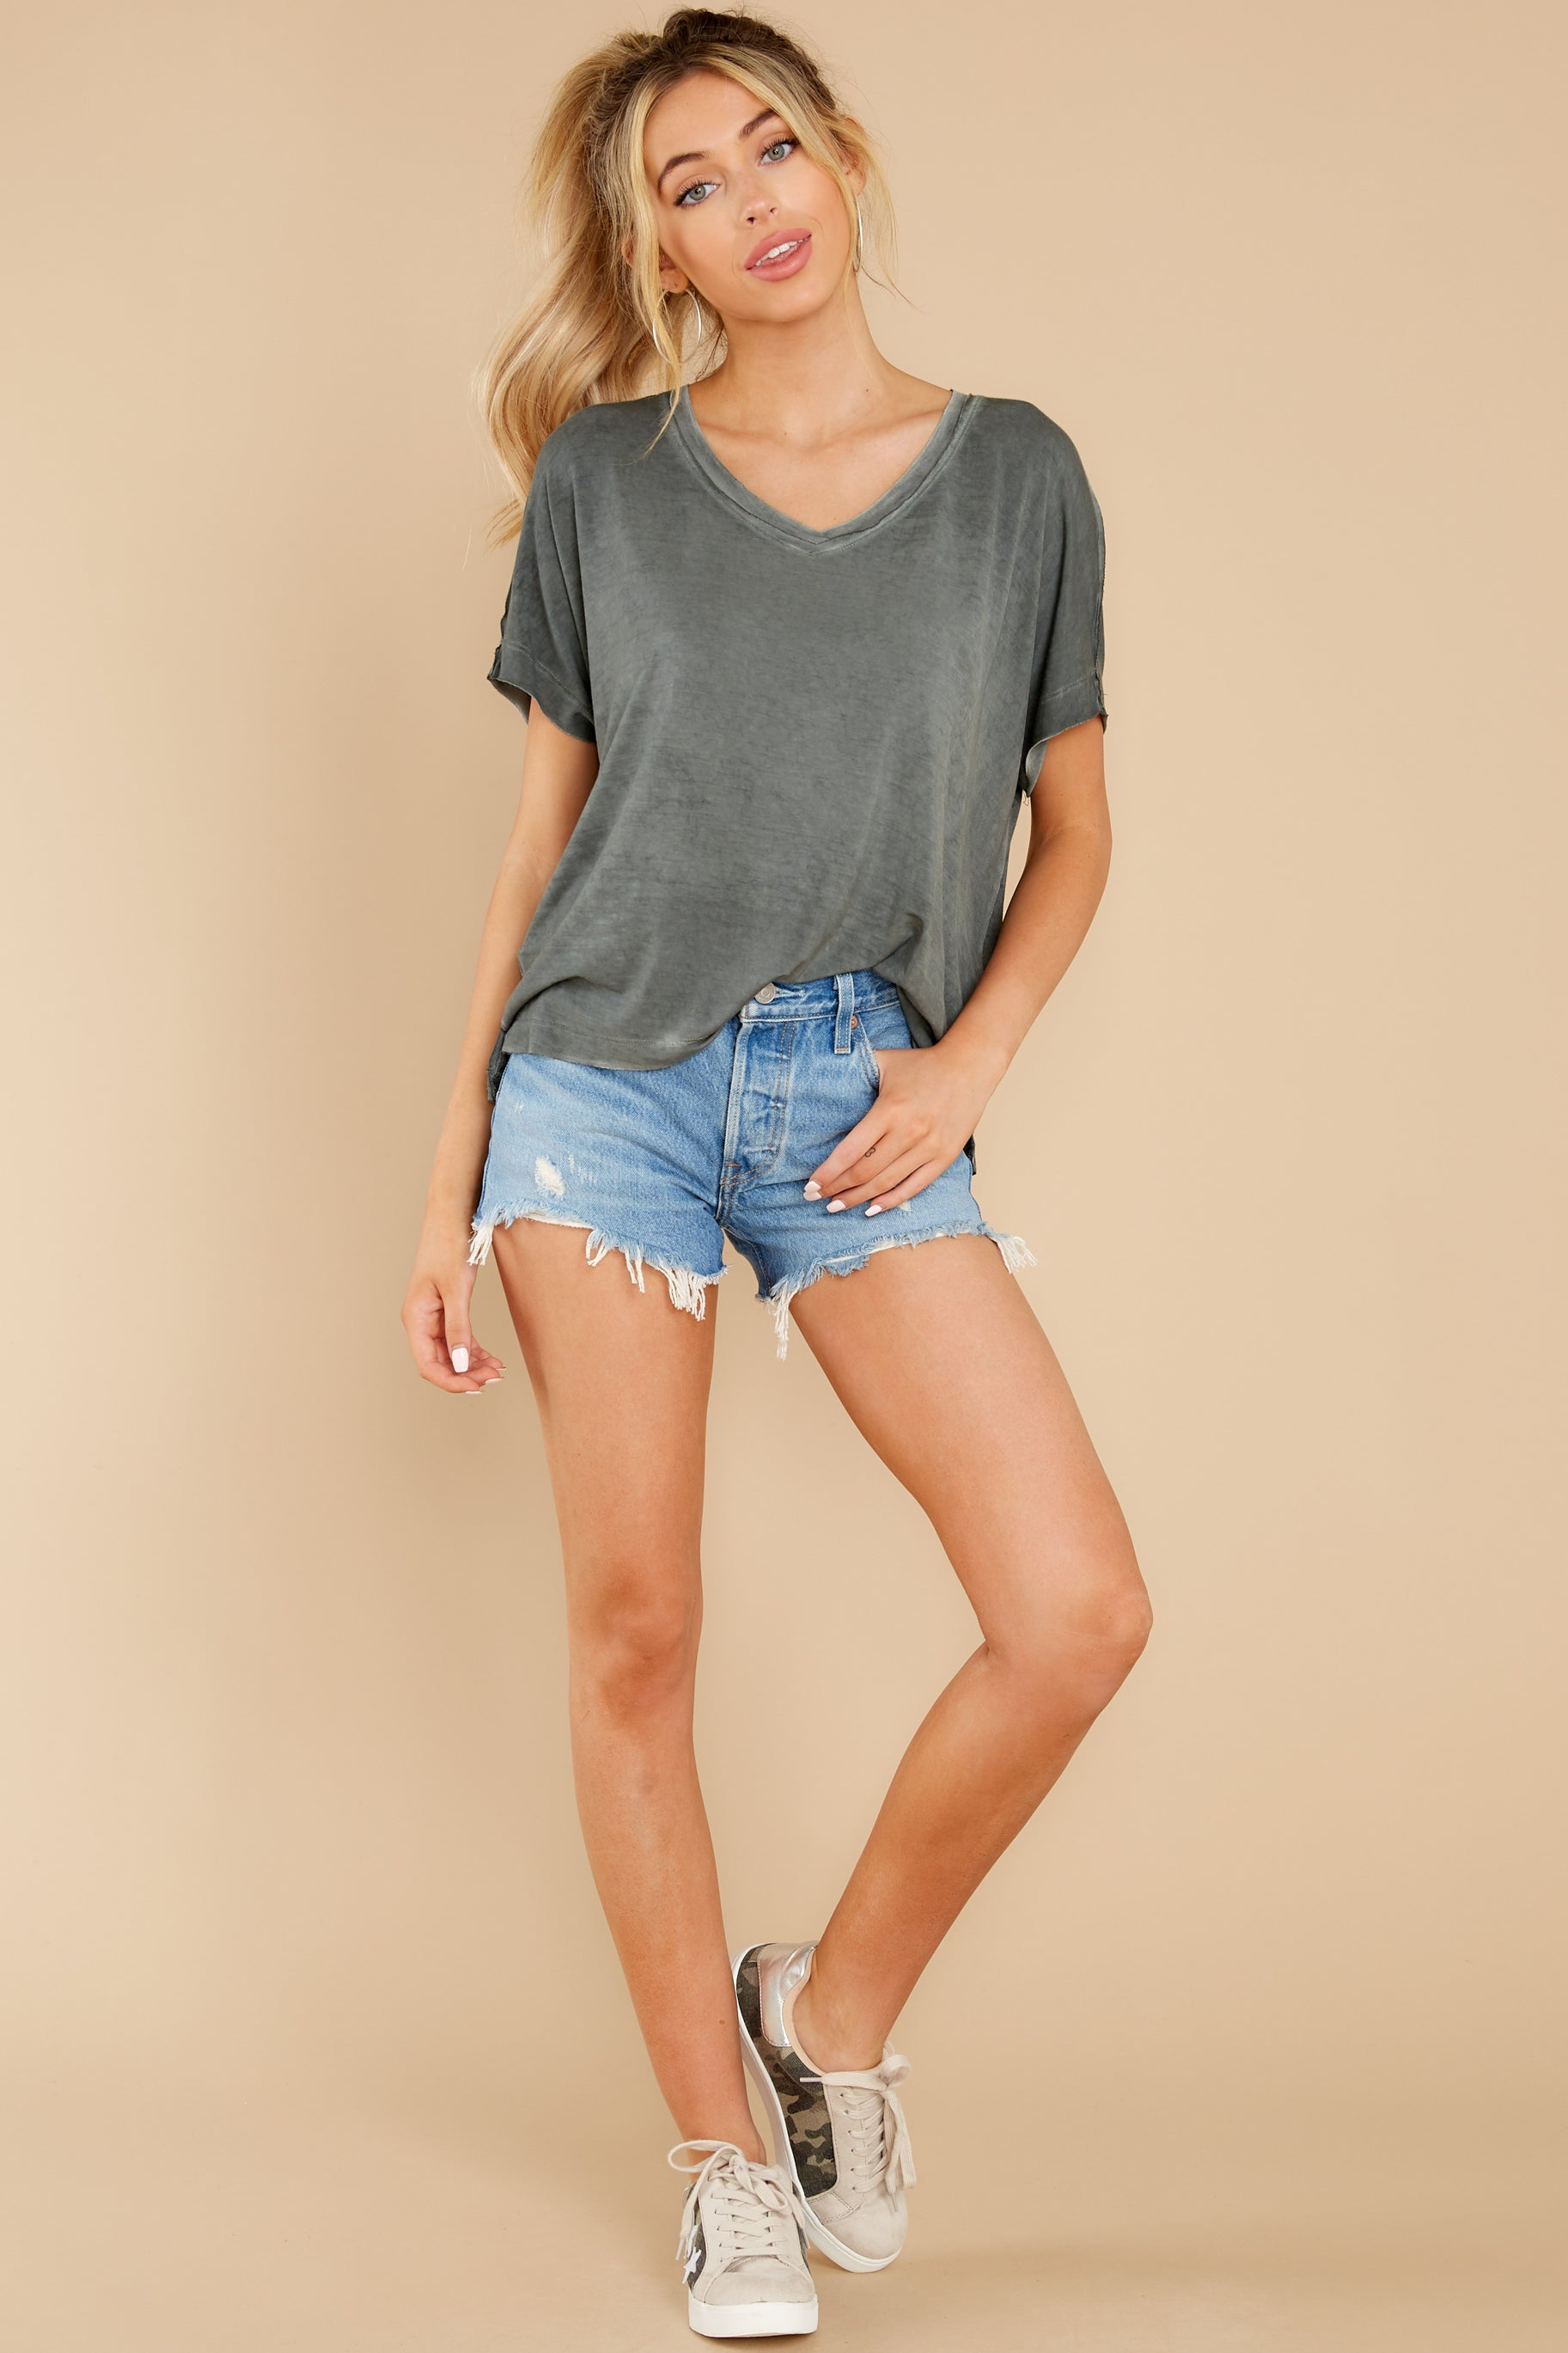 4  Mischa Sleek Ash Green V-Neck Tee at reddress.com